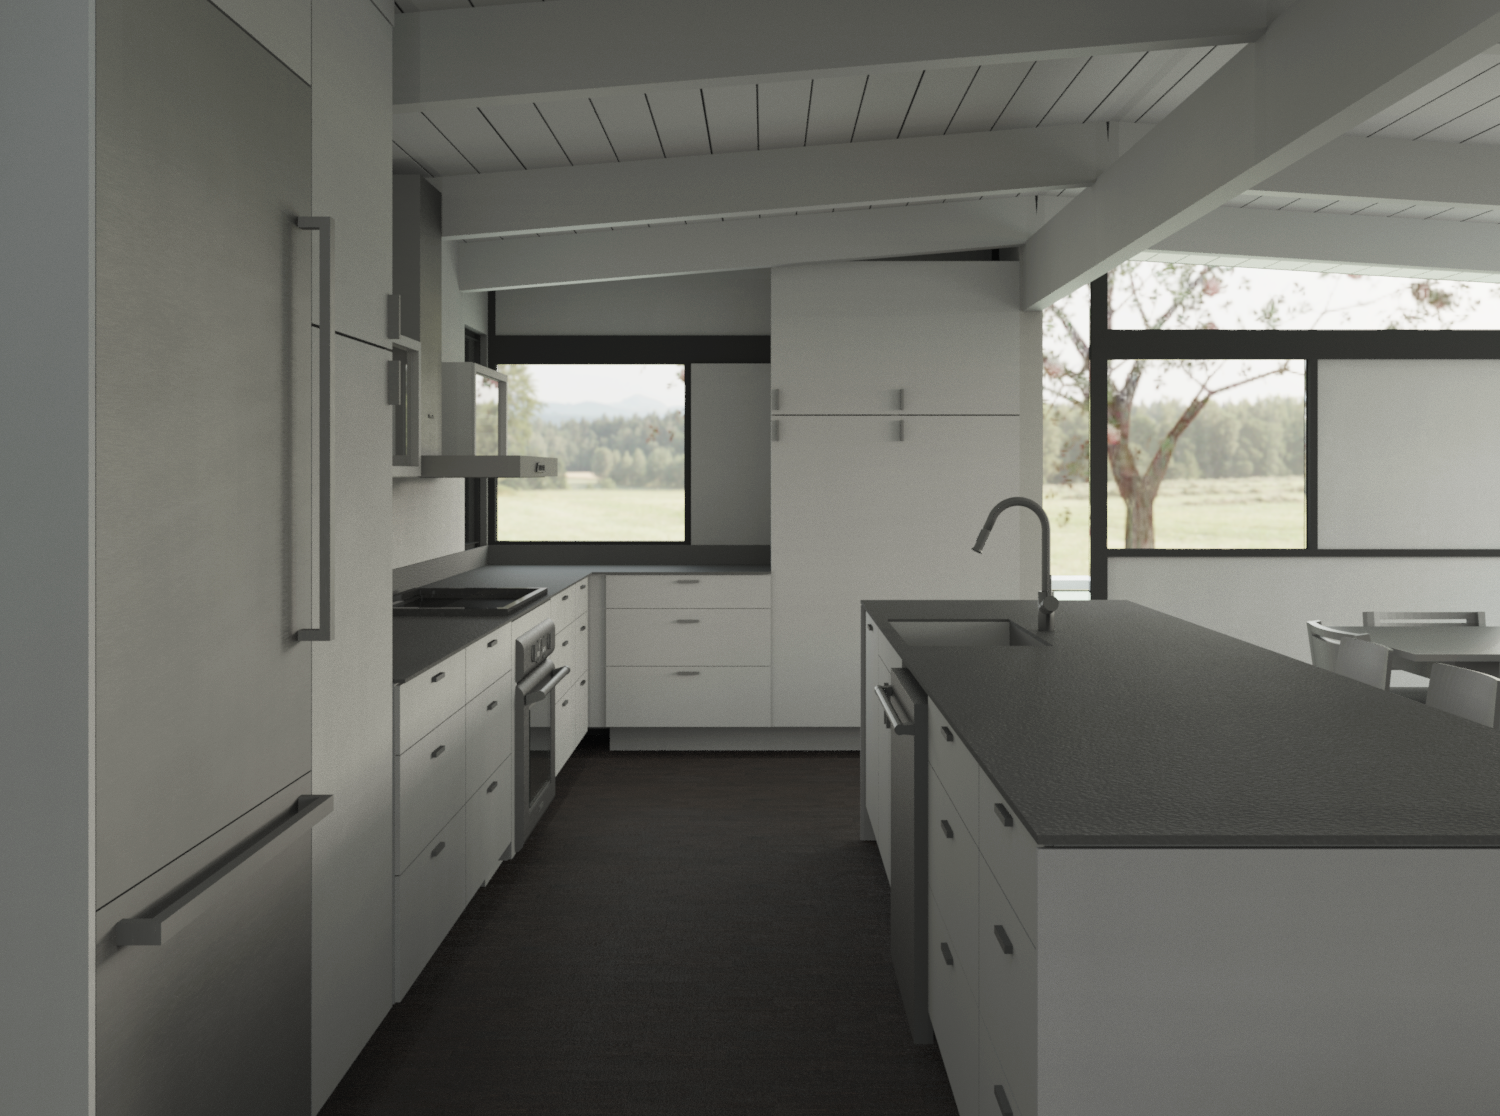 SFairfax_3D_View_-_single_large_-_Kitchen_View_-_galley.png